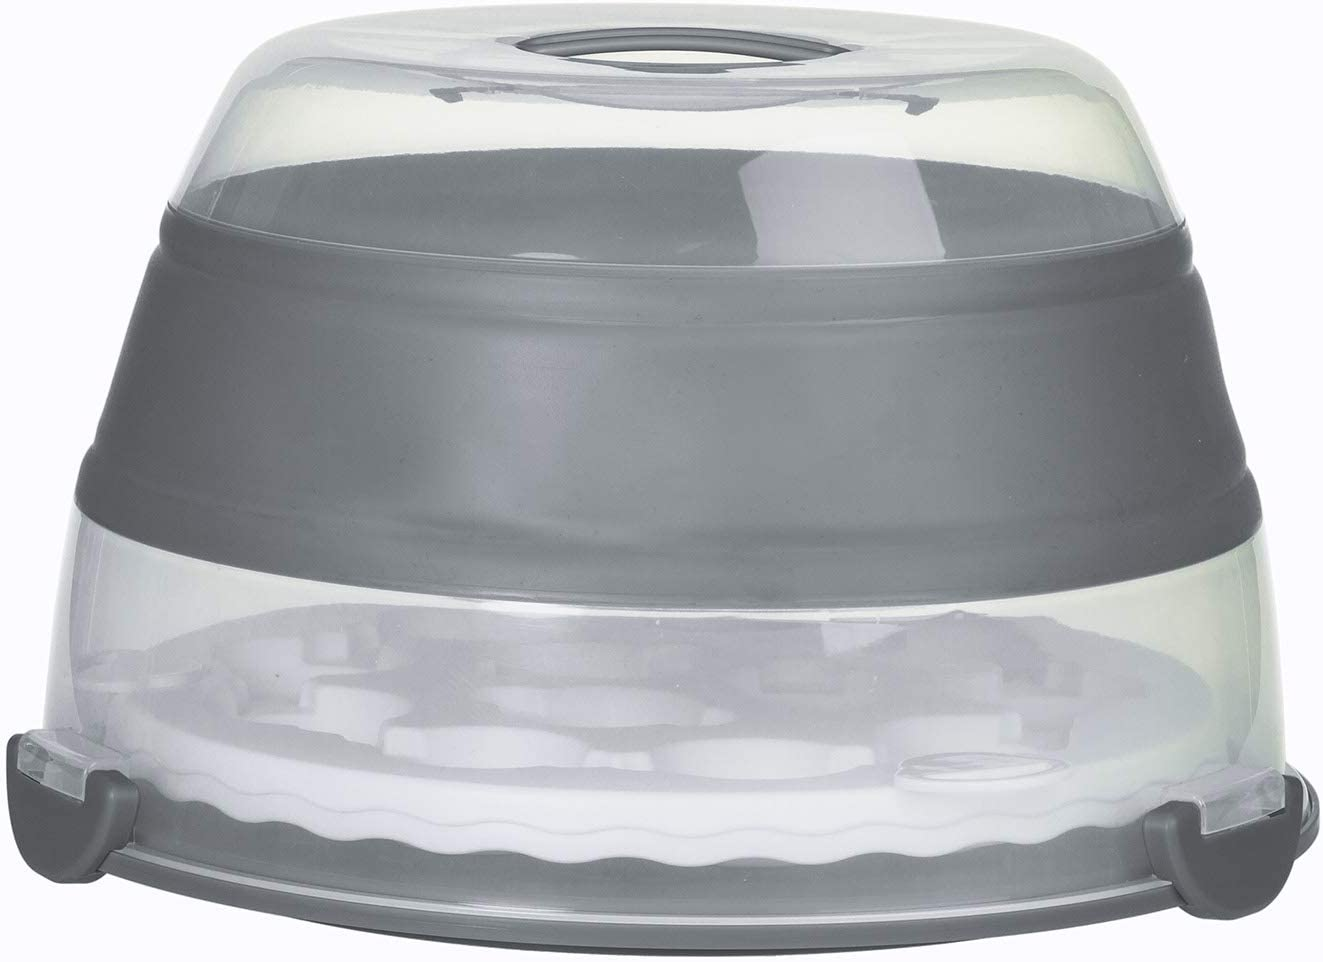 PrepWorks Collapsible Cupcake Carrier, Gray